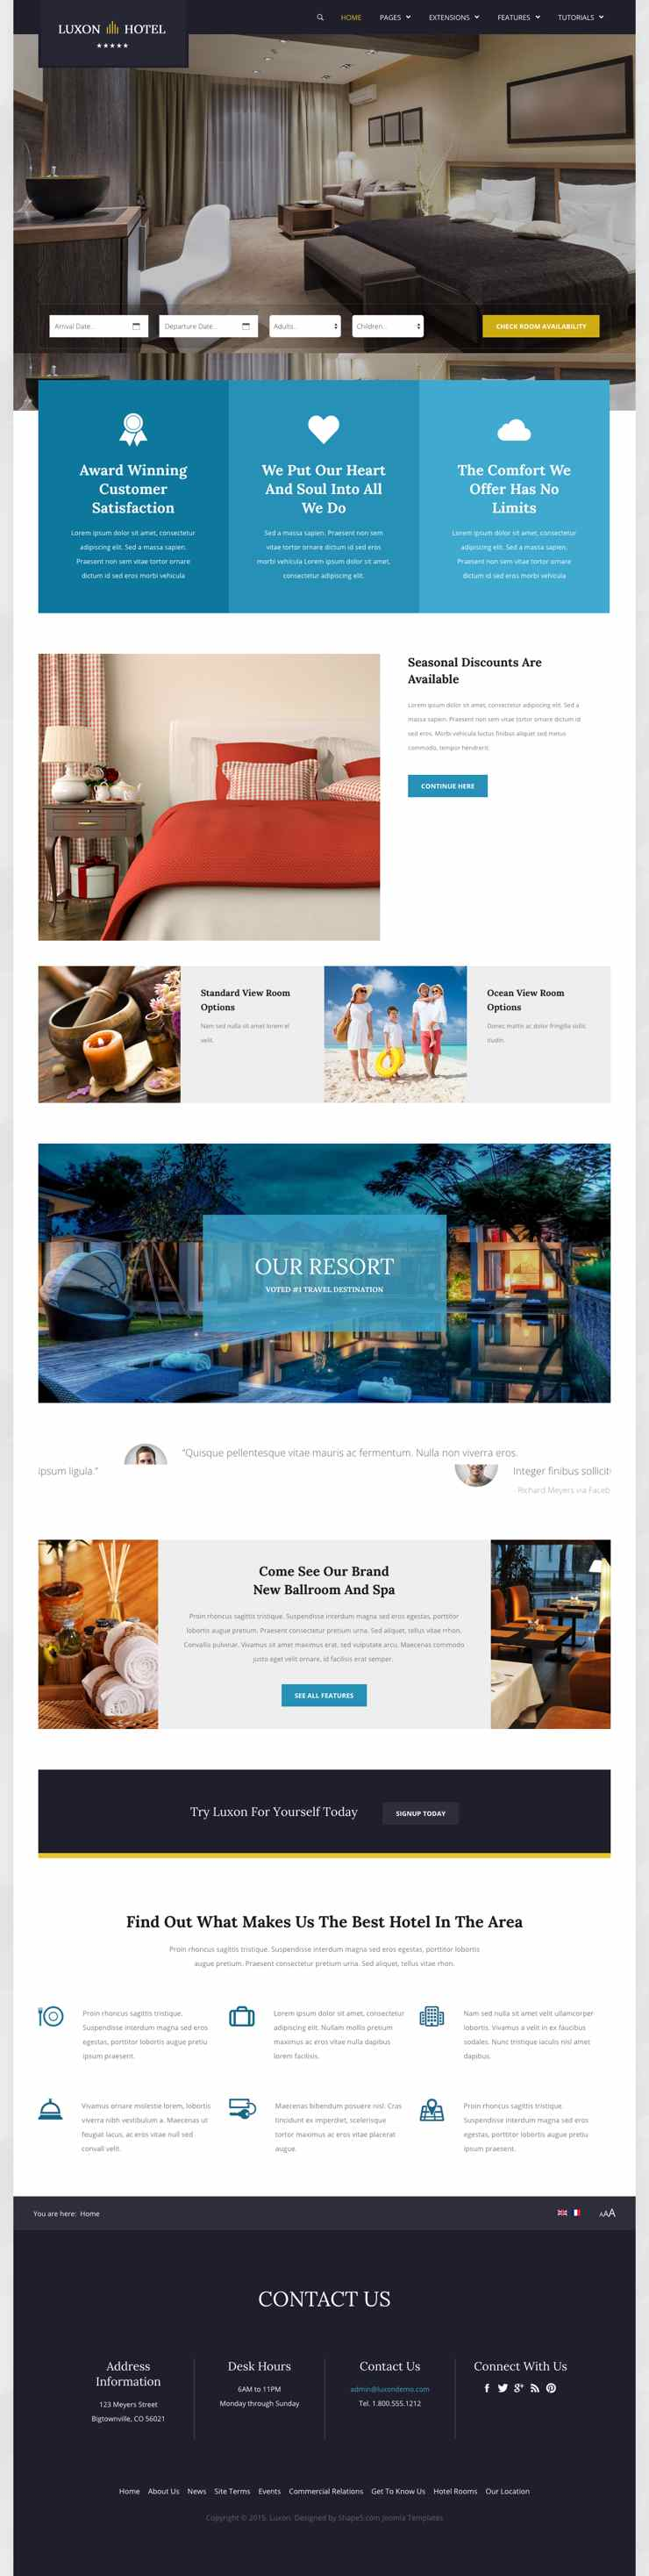 Luxon joomla resort or hotel accommodation template for Joomla hotel template